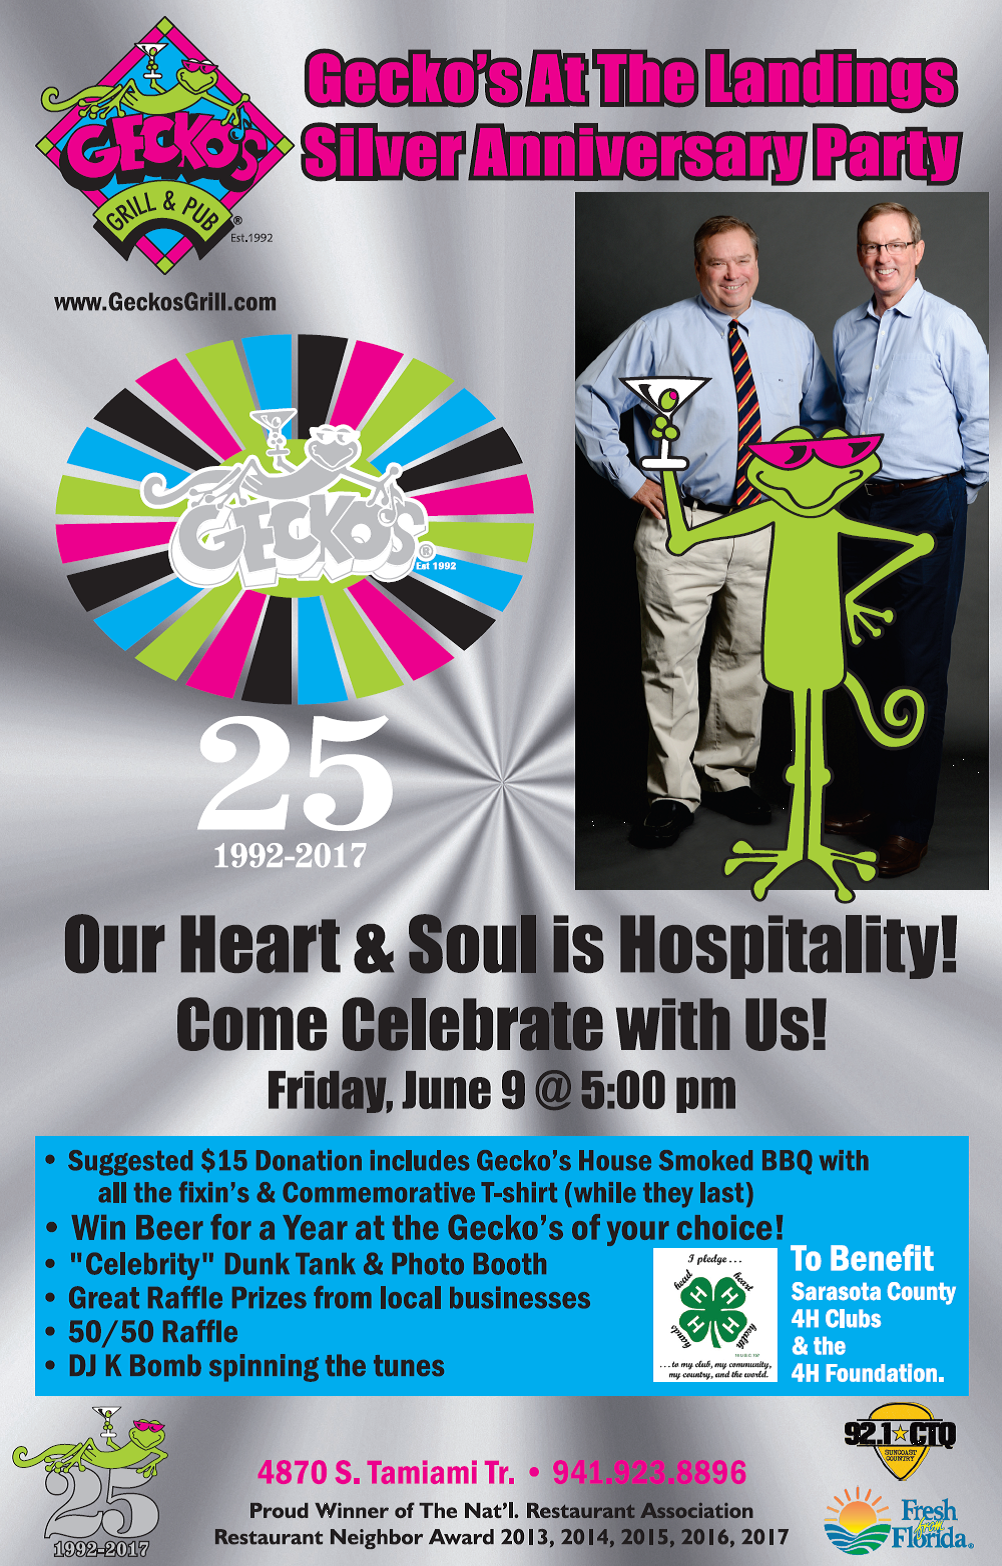 Gecko's Silver Anniversary Party at the Landings! Friday, June 9 @ 5:00